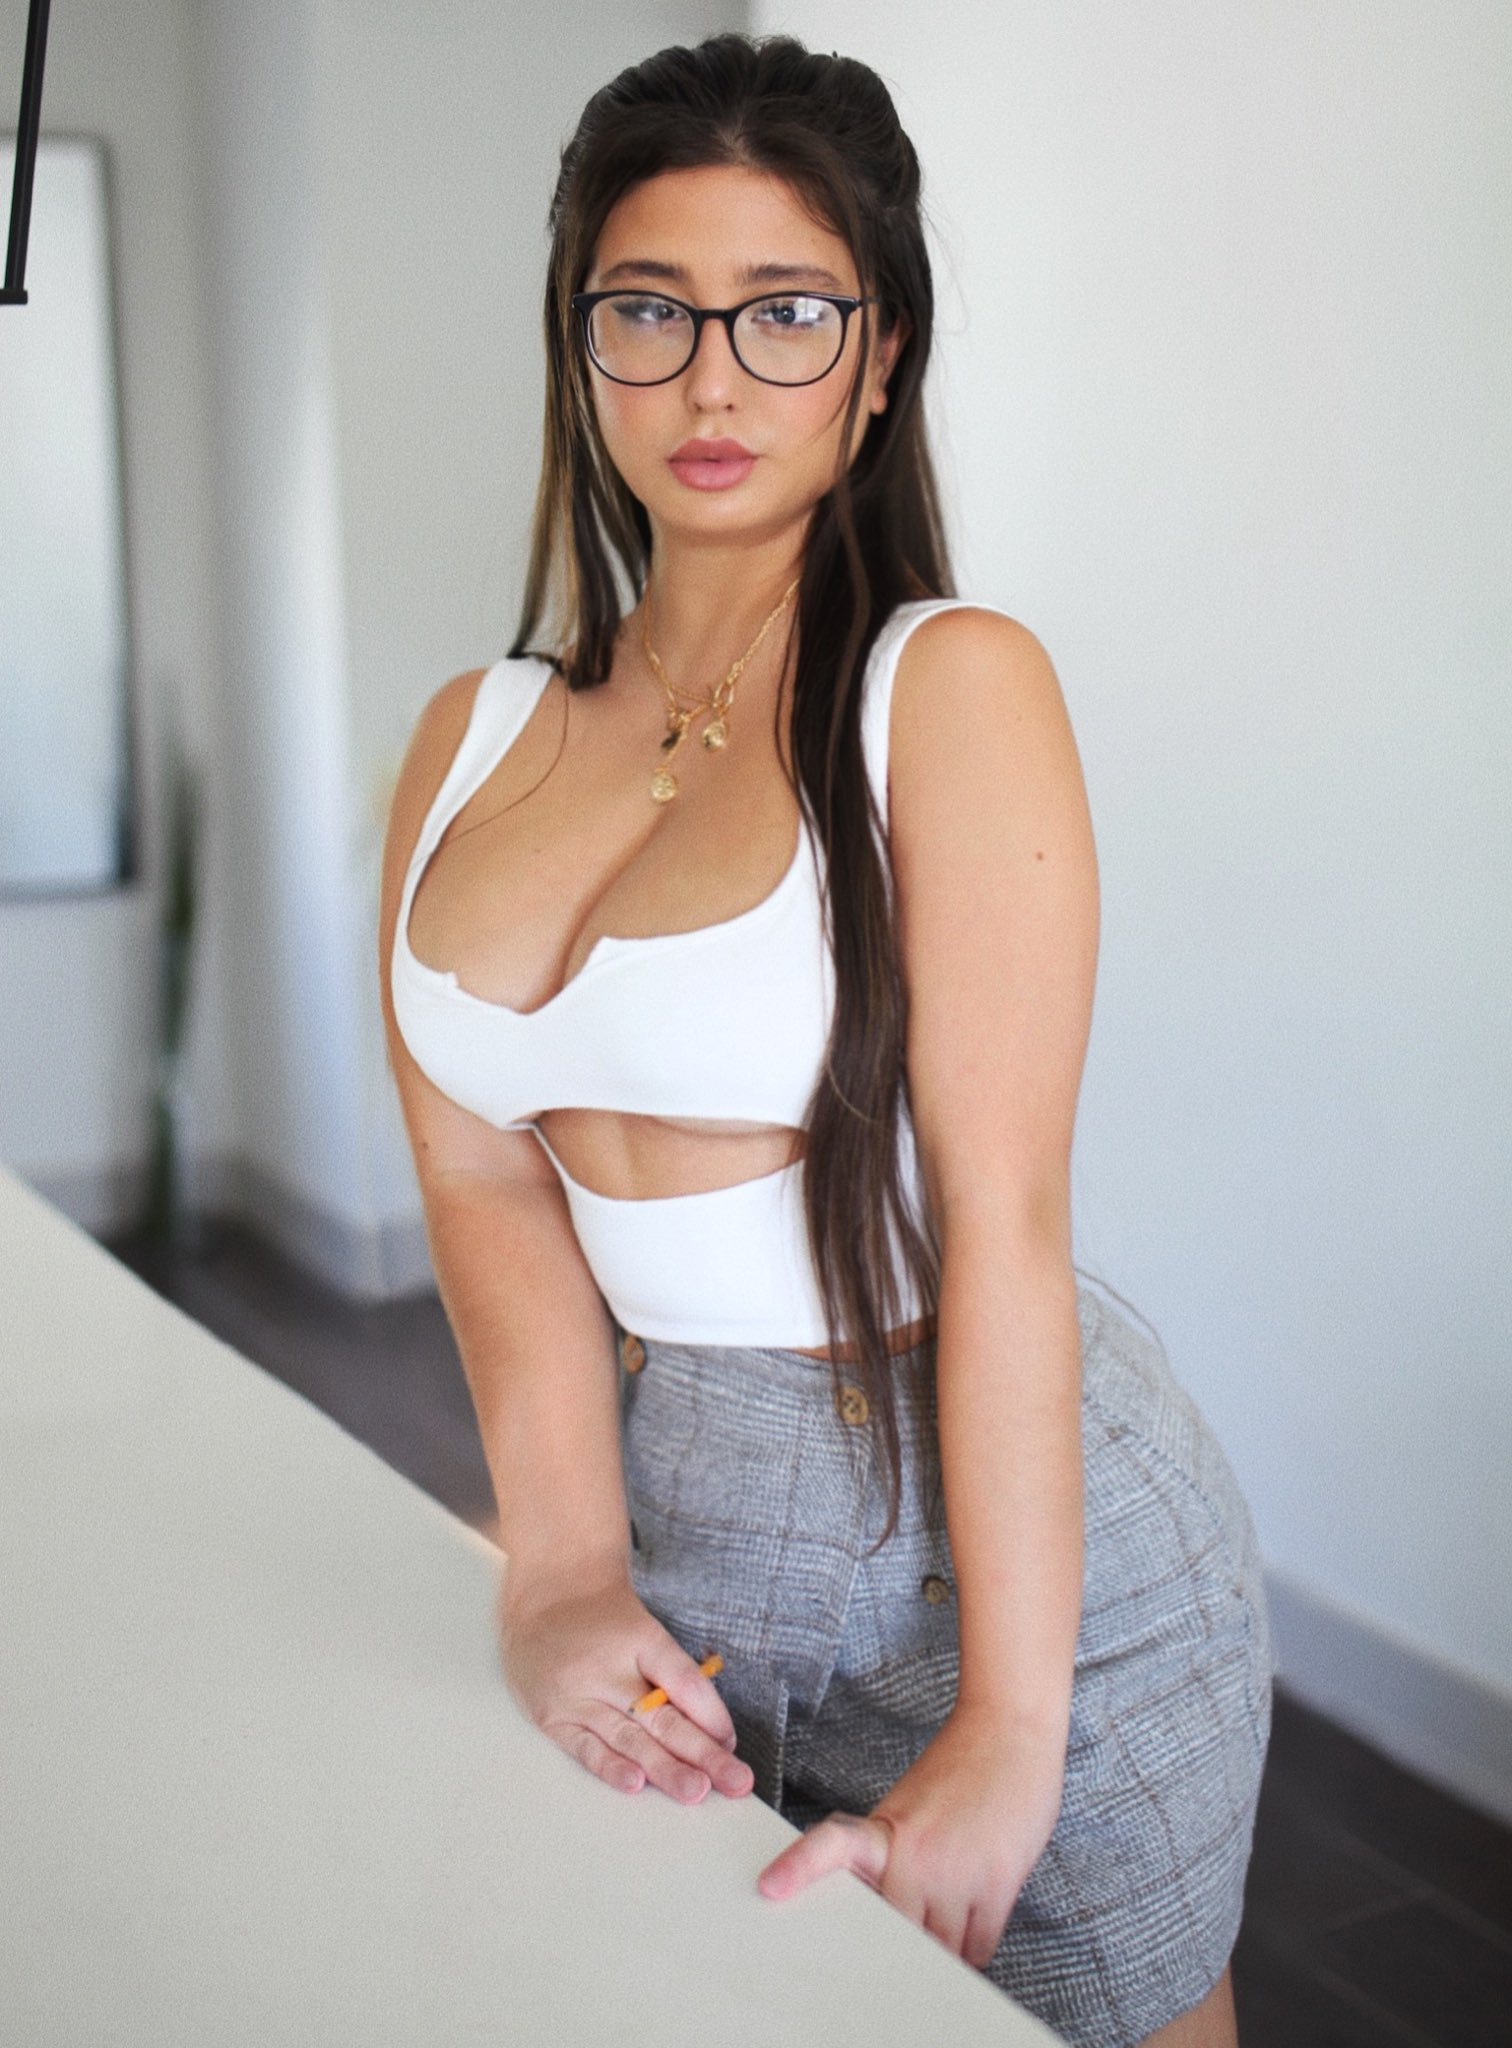 1 pic. class is in session https://t.co/xzQpt5qmyC